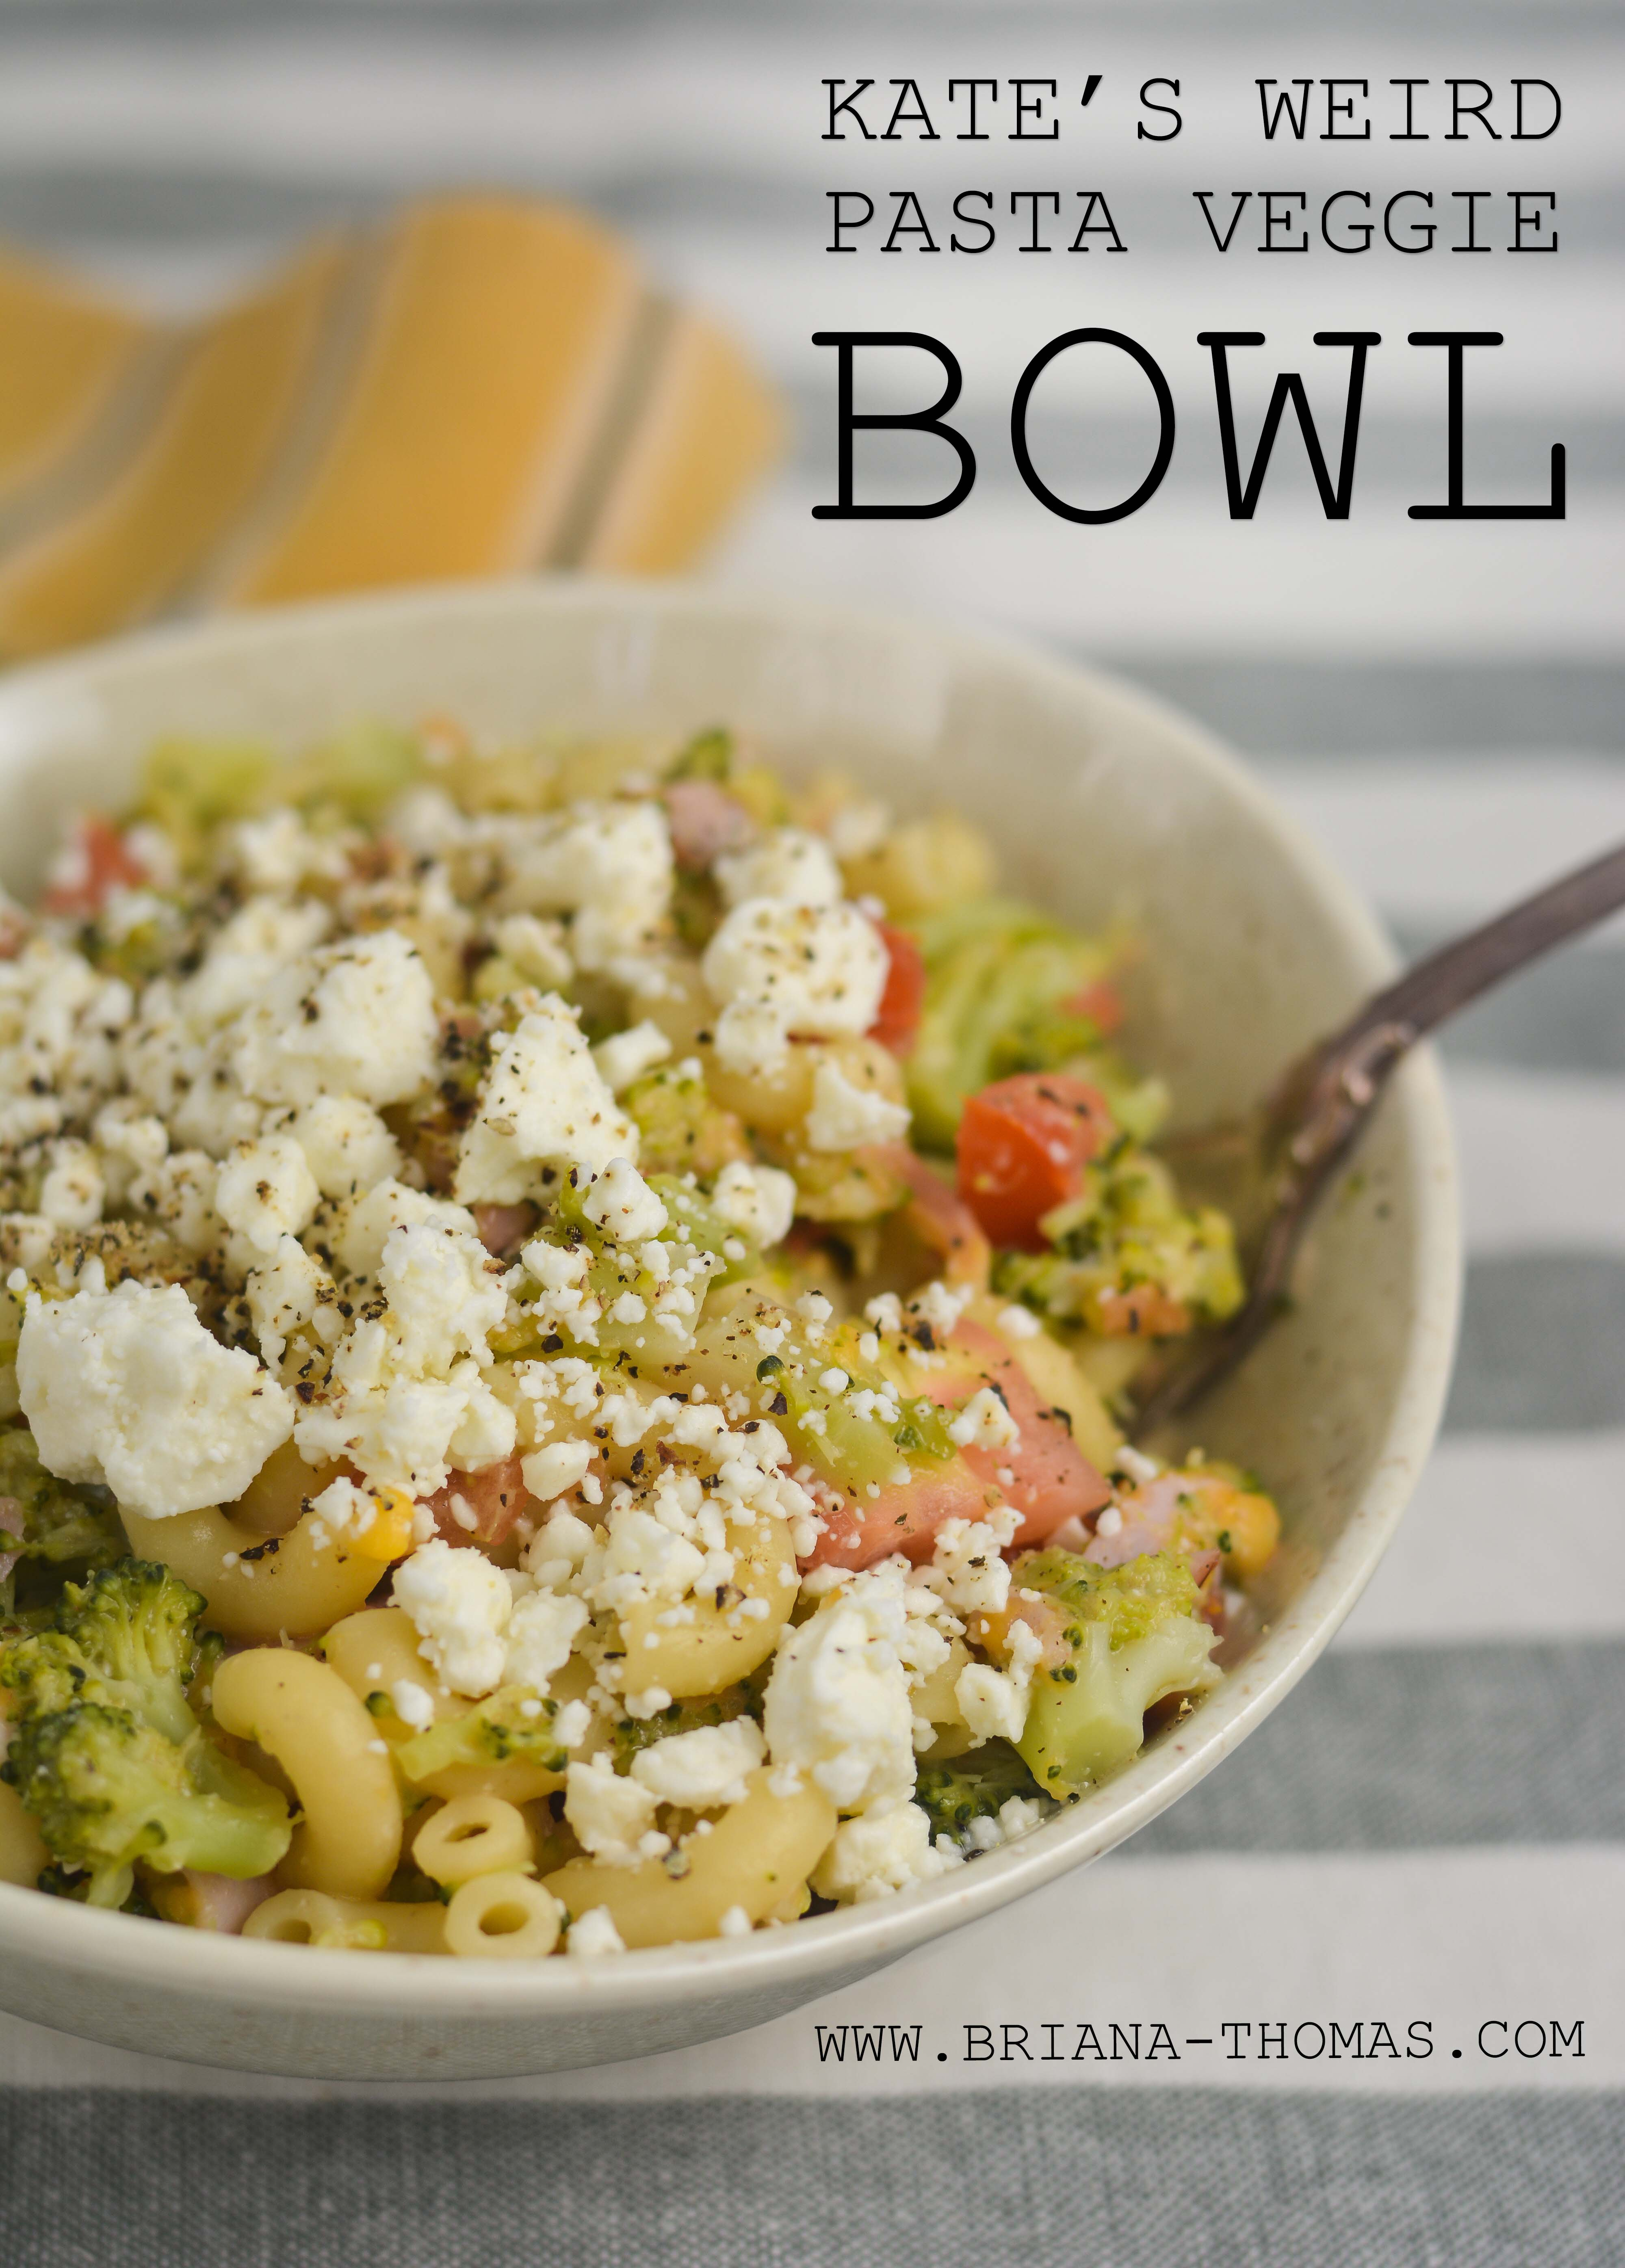 Here's a unique lunch for you! I call this single-serve concoction Kate's Weird Pasta Veggie Bowl because a) my little sister Katelyn came up with it, and b) it's a little strange. But it tastes so good and gives you the pasta fix along with some great veggies! THM S